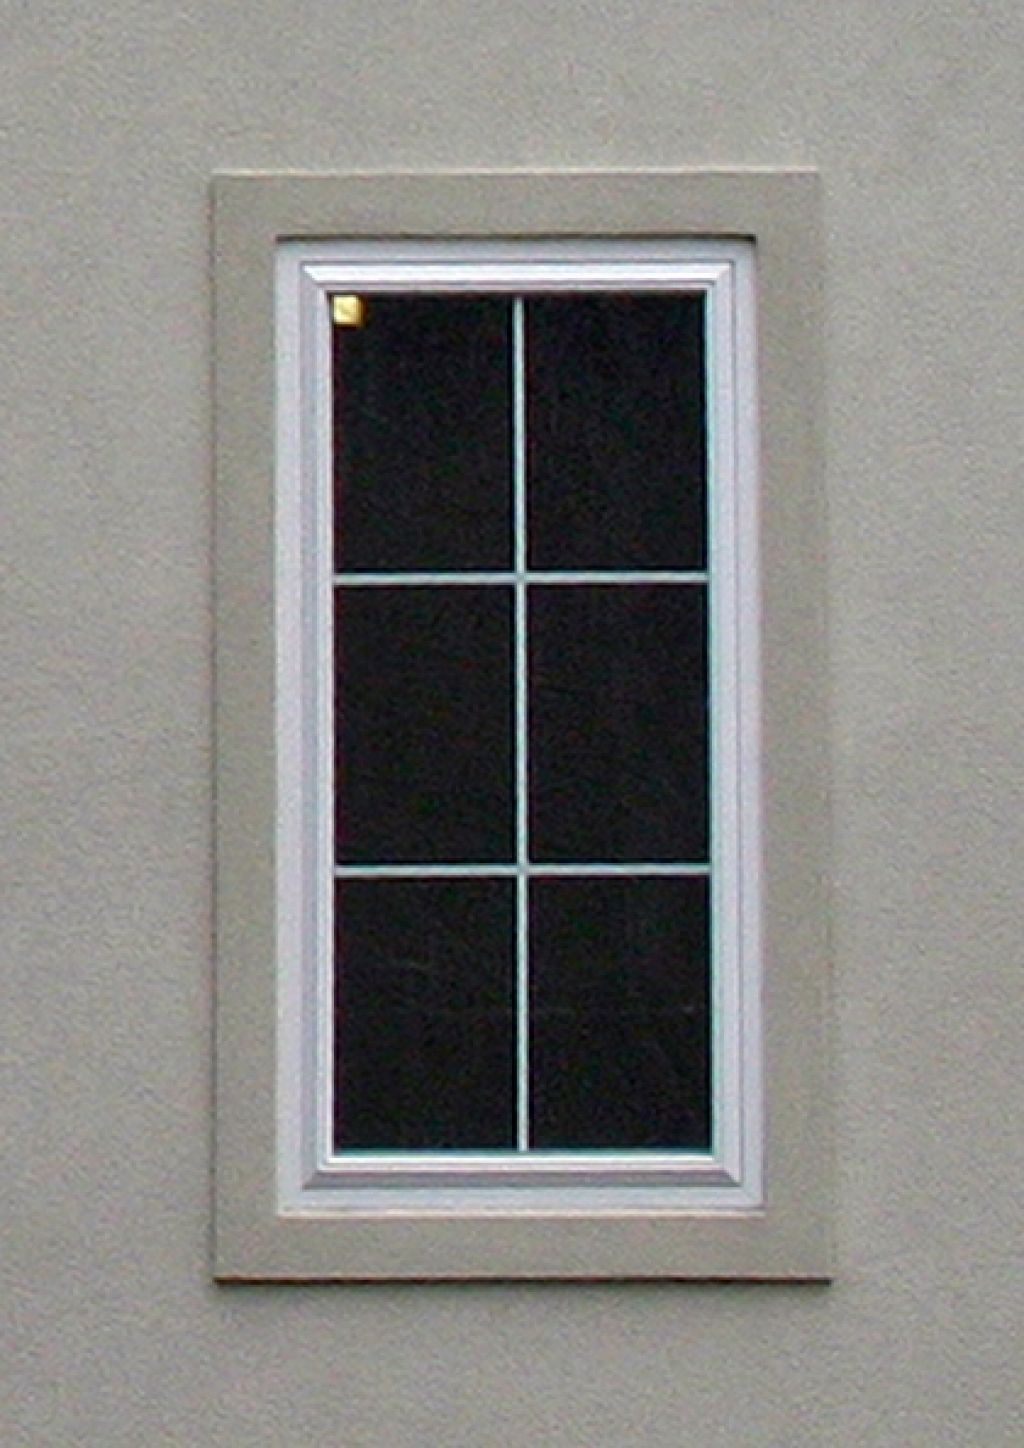 Exterior Stucco Window Trim   Window trim exterior, Stucco